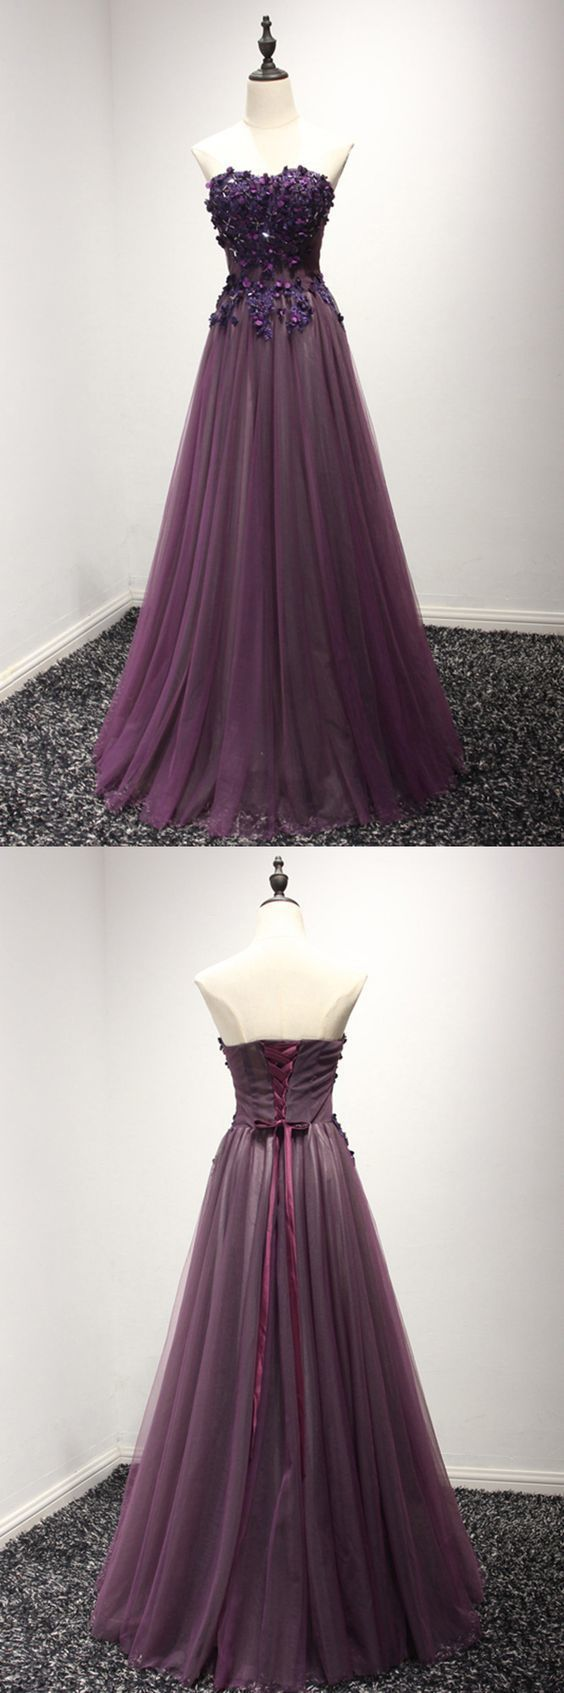 Purple Long Floral Prom Formal Dress In Long, F0558